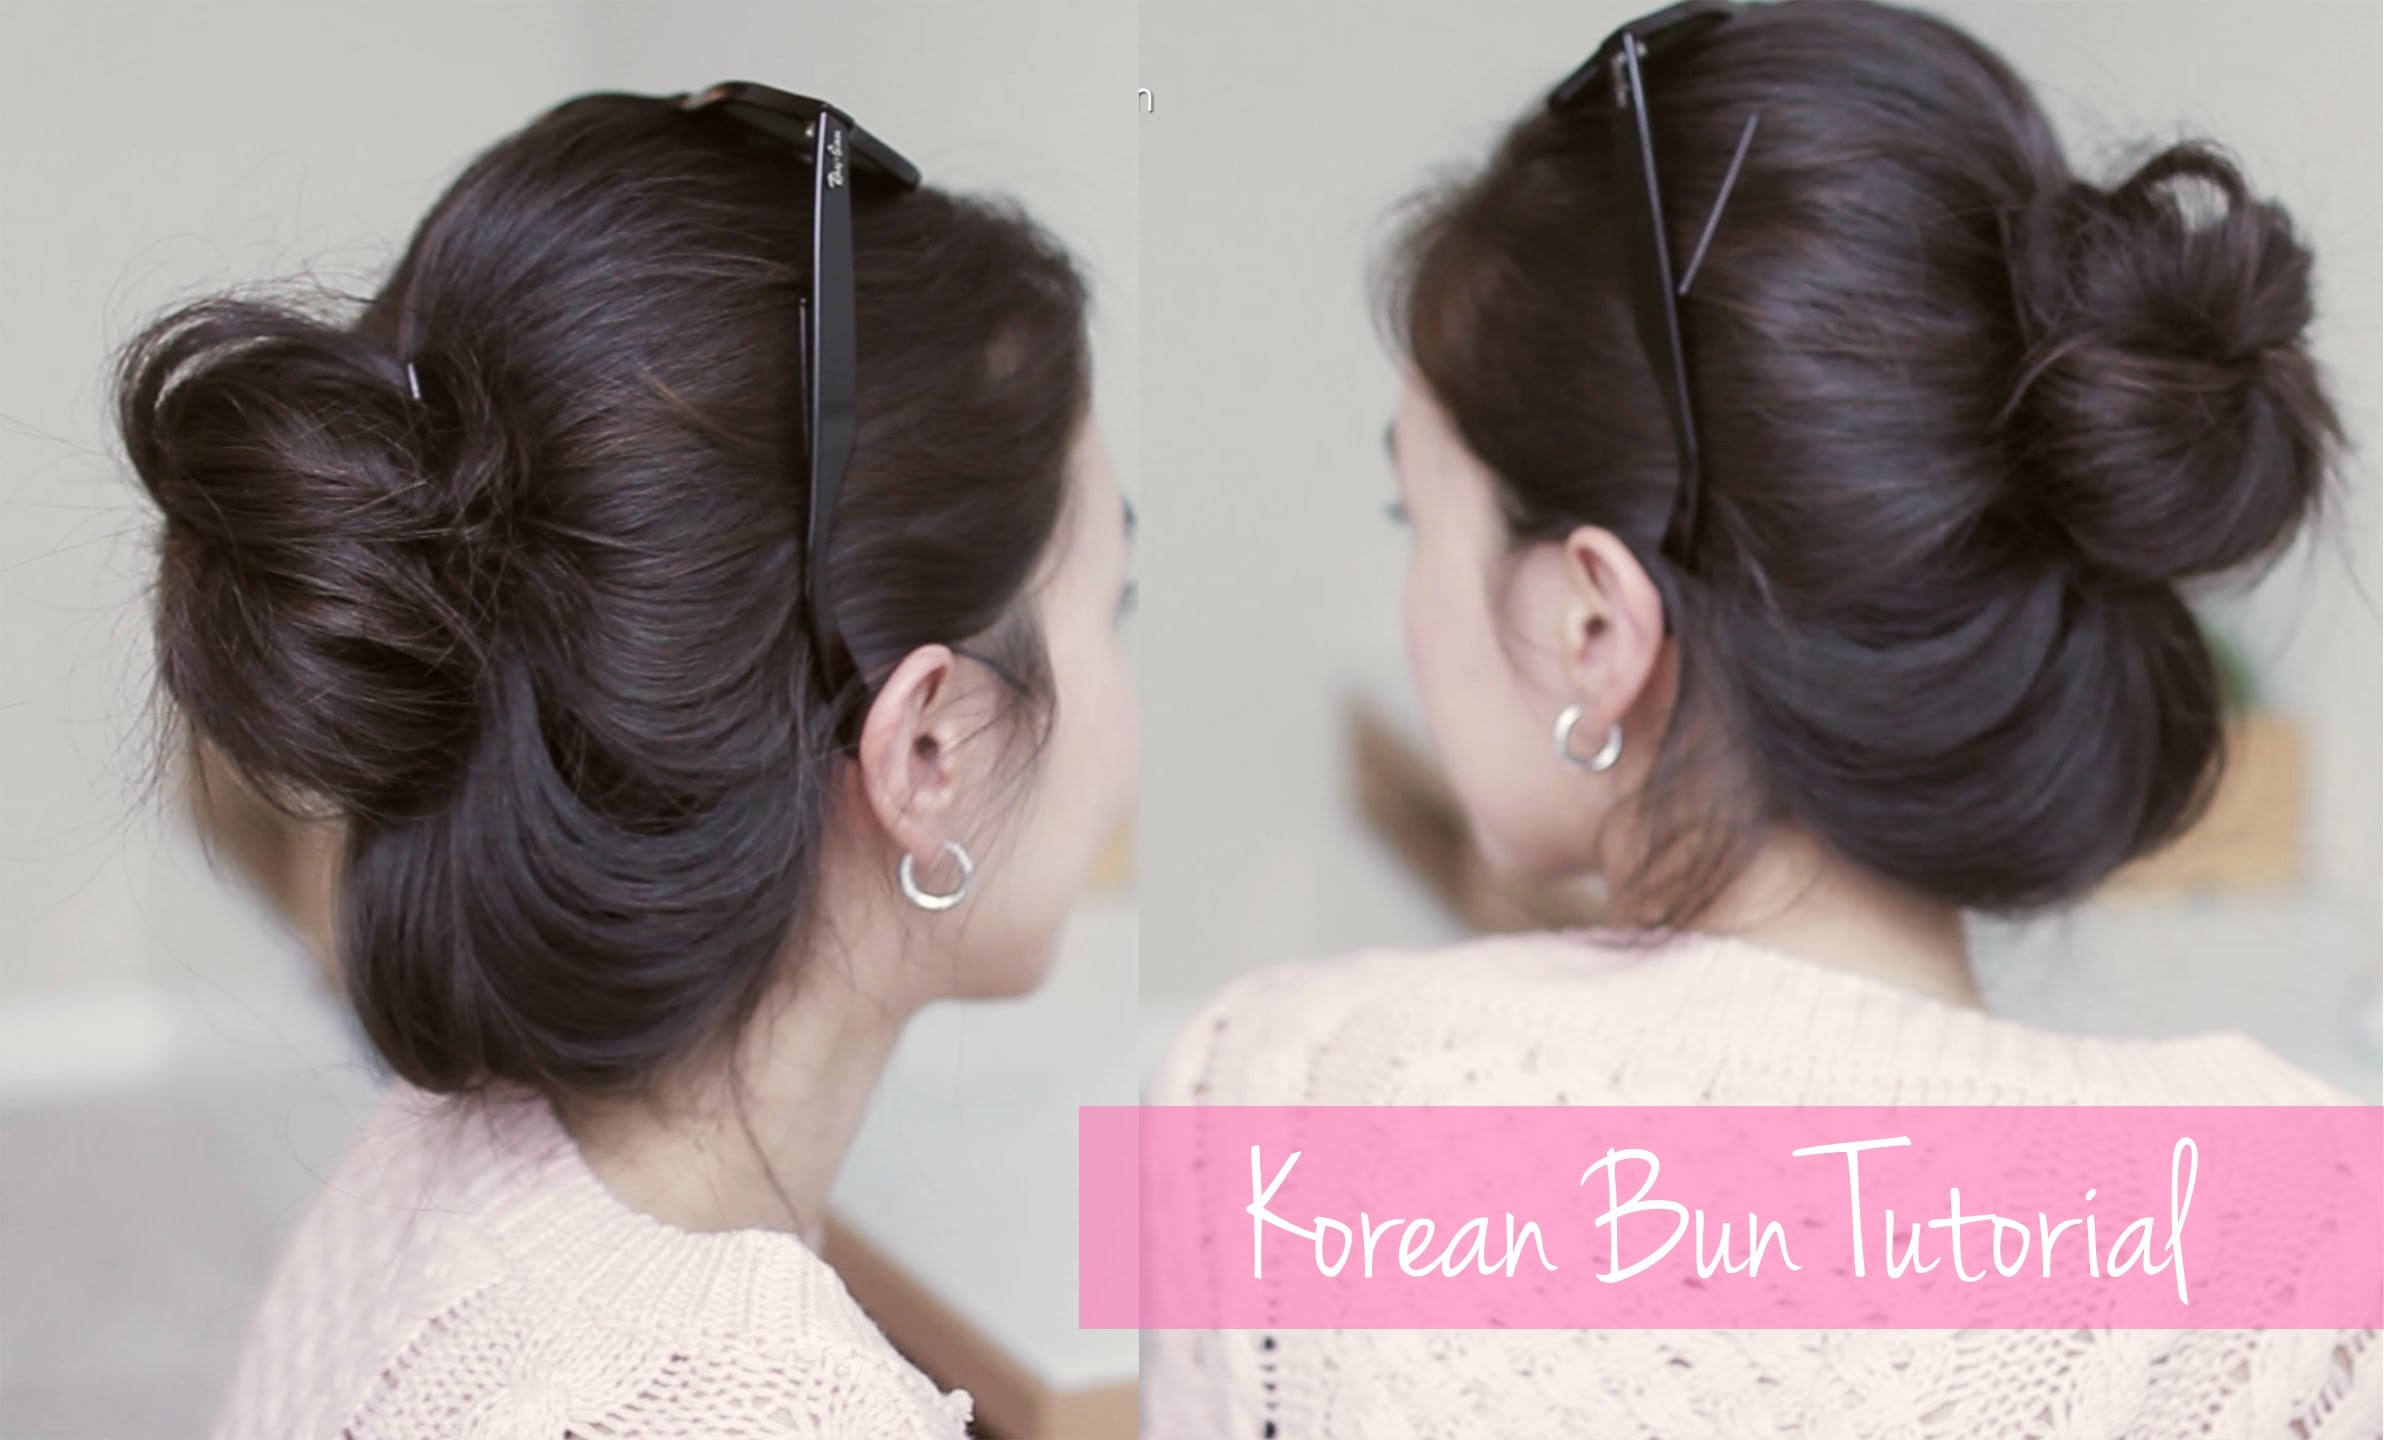 Korean natural bun tutorial